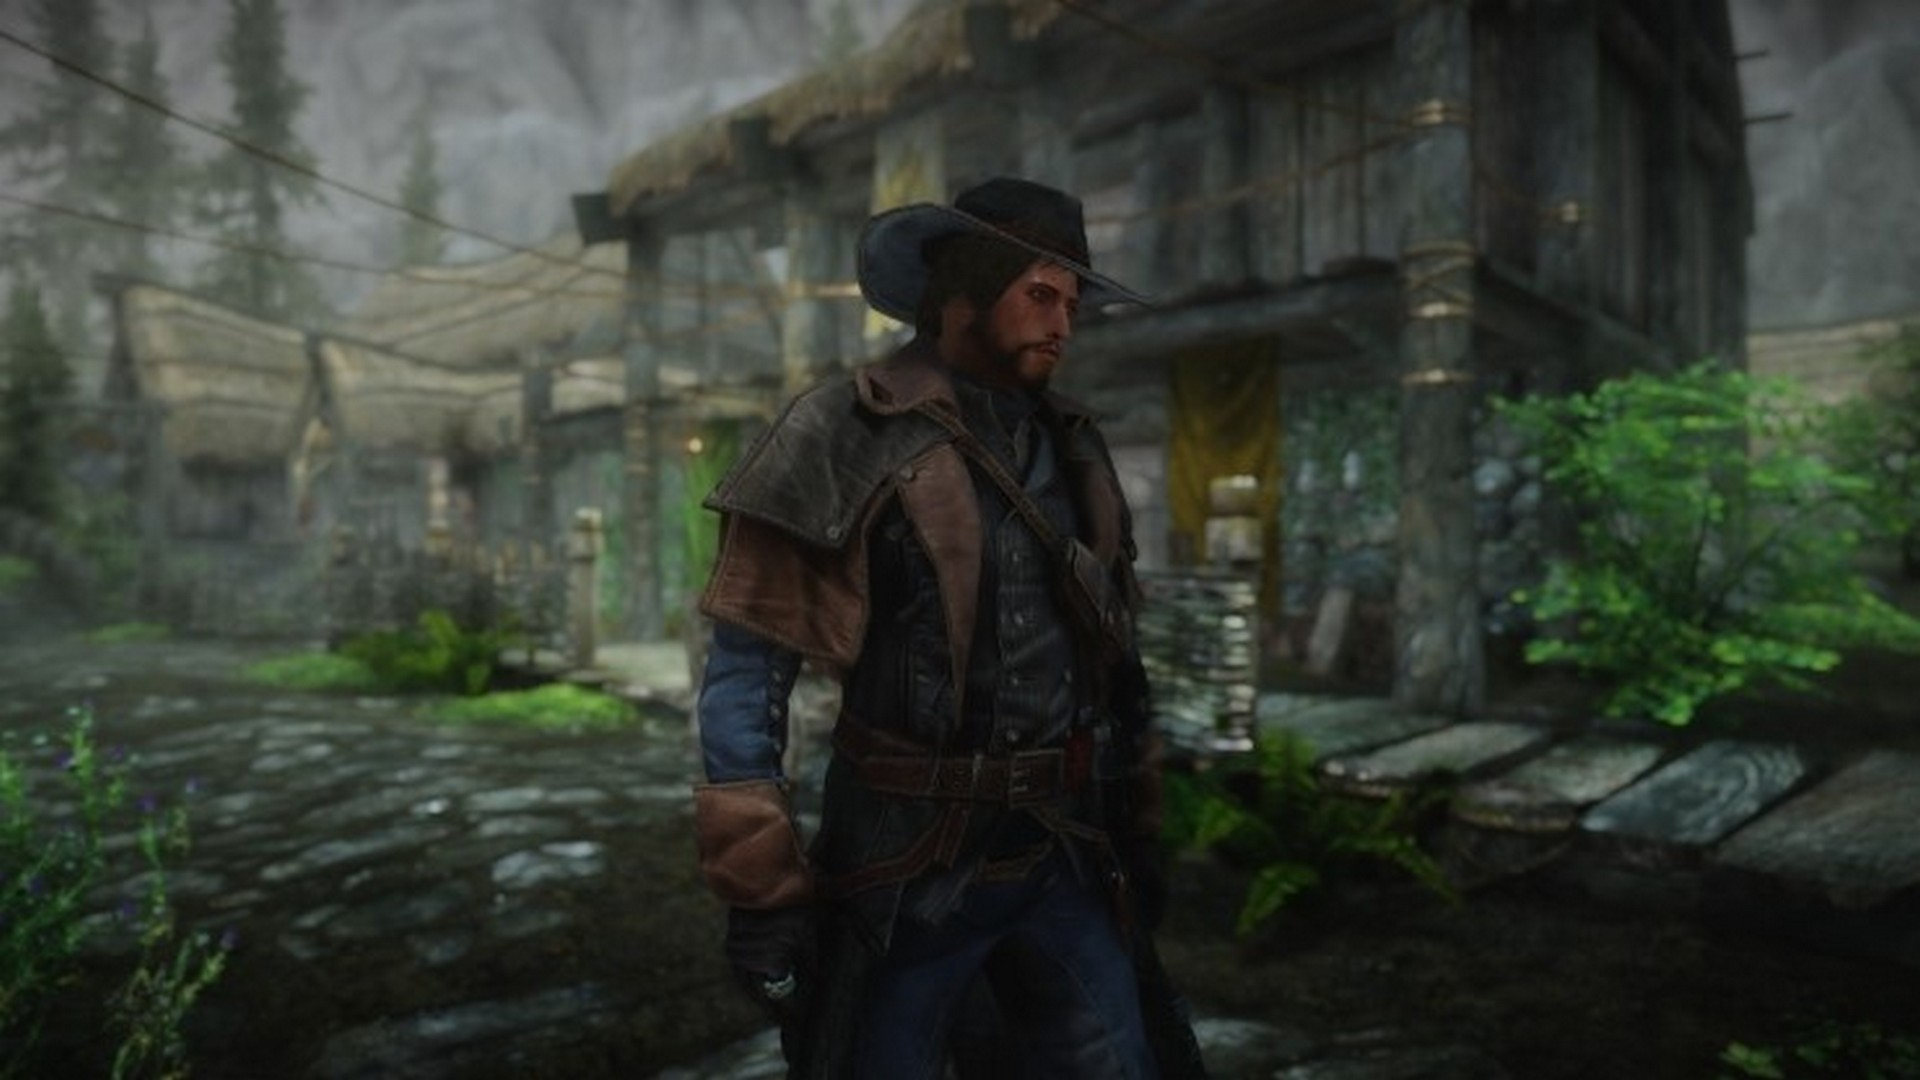 Assassin's_Creed_Rogue_Frontiersman_Outfit_01.jpg